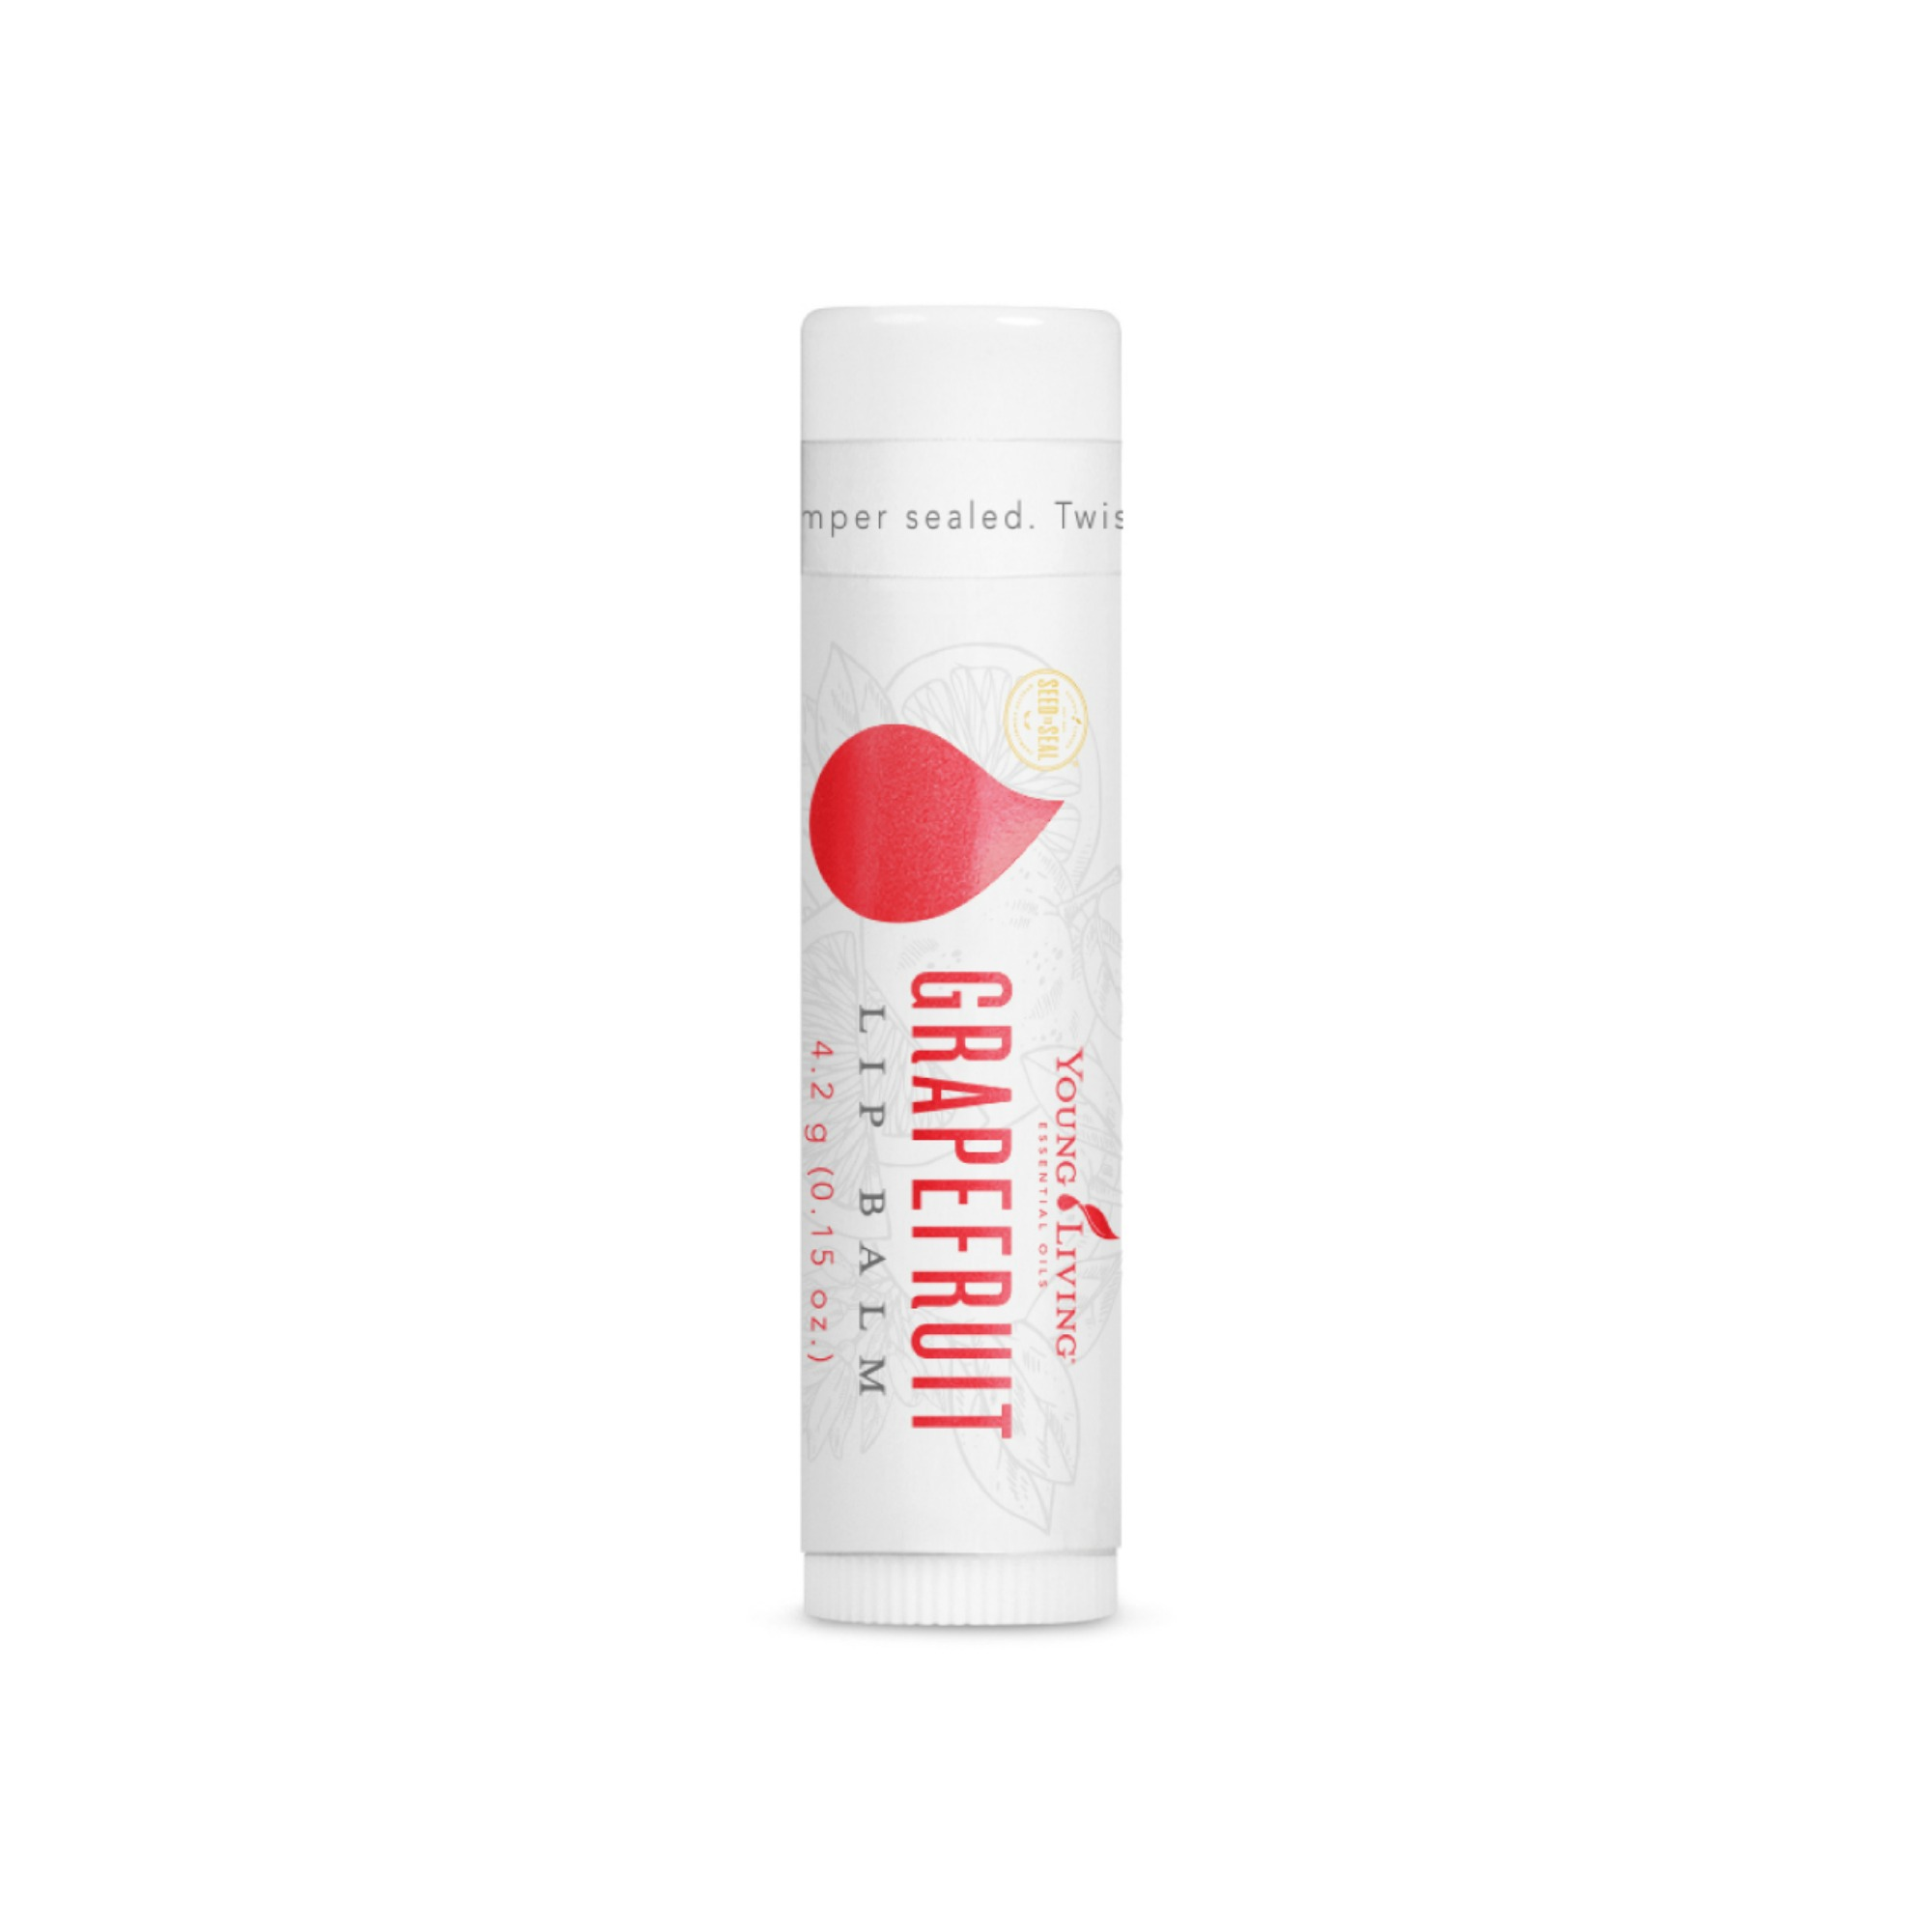 GRAPEFRUIT LIP BALM    Infused with Grapefruit essential oil, wolfberry seed oil, and antioxidants, this refreshing lip balm seals in moisture to prevent dehydration for smooth lips. It is perfect for on the go, and leaves a long lasting moisture and protective barrier on the lips.   Click here   to learn more about this product.